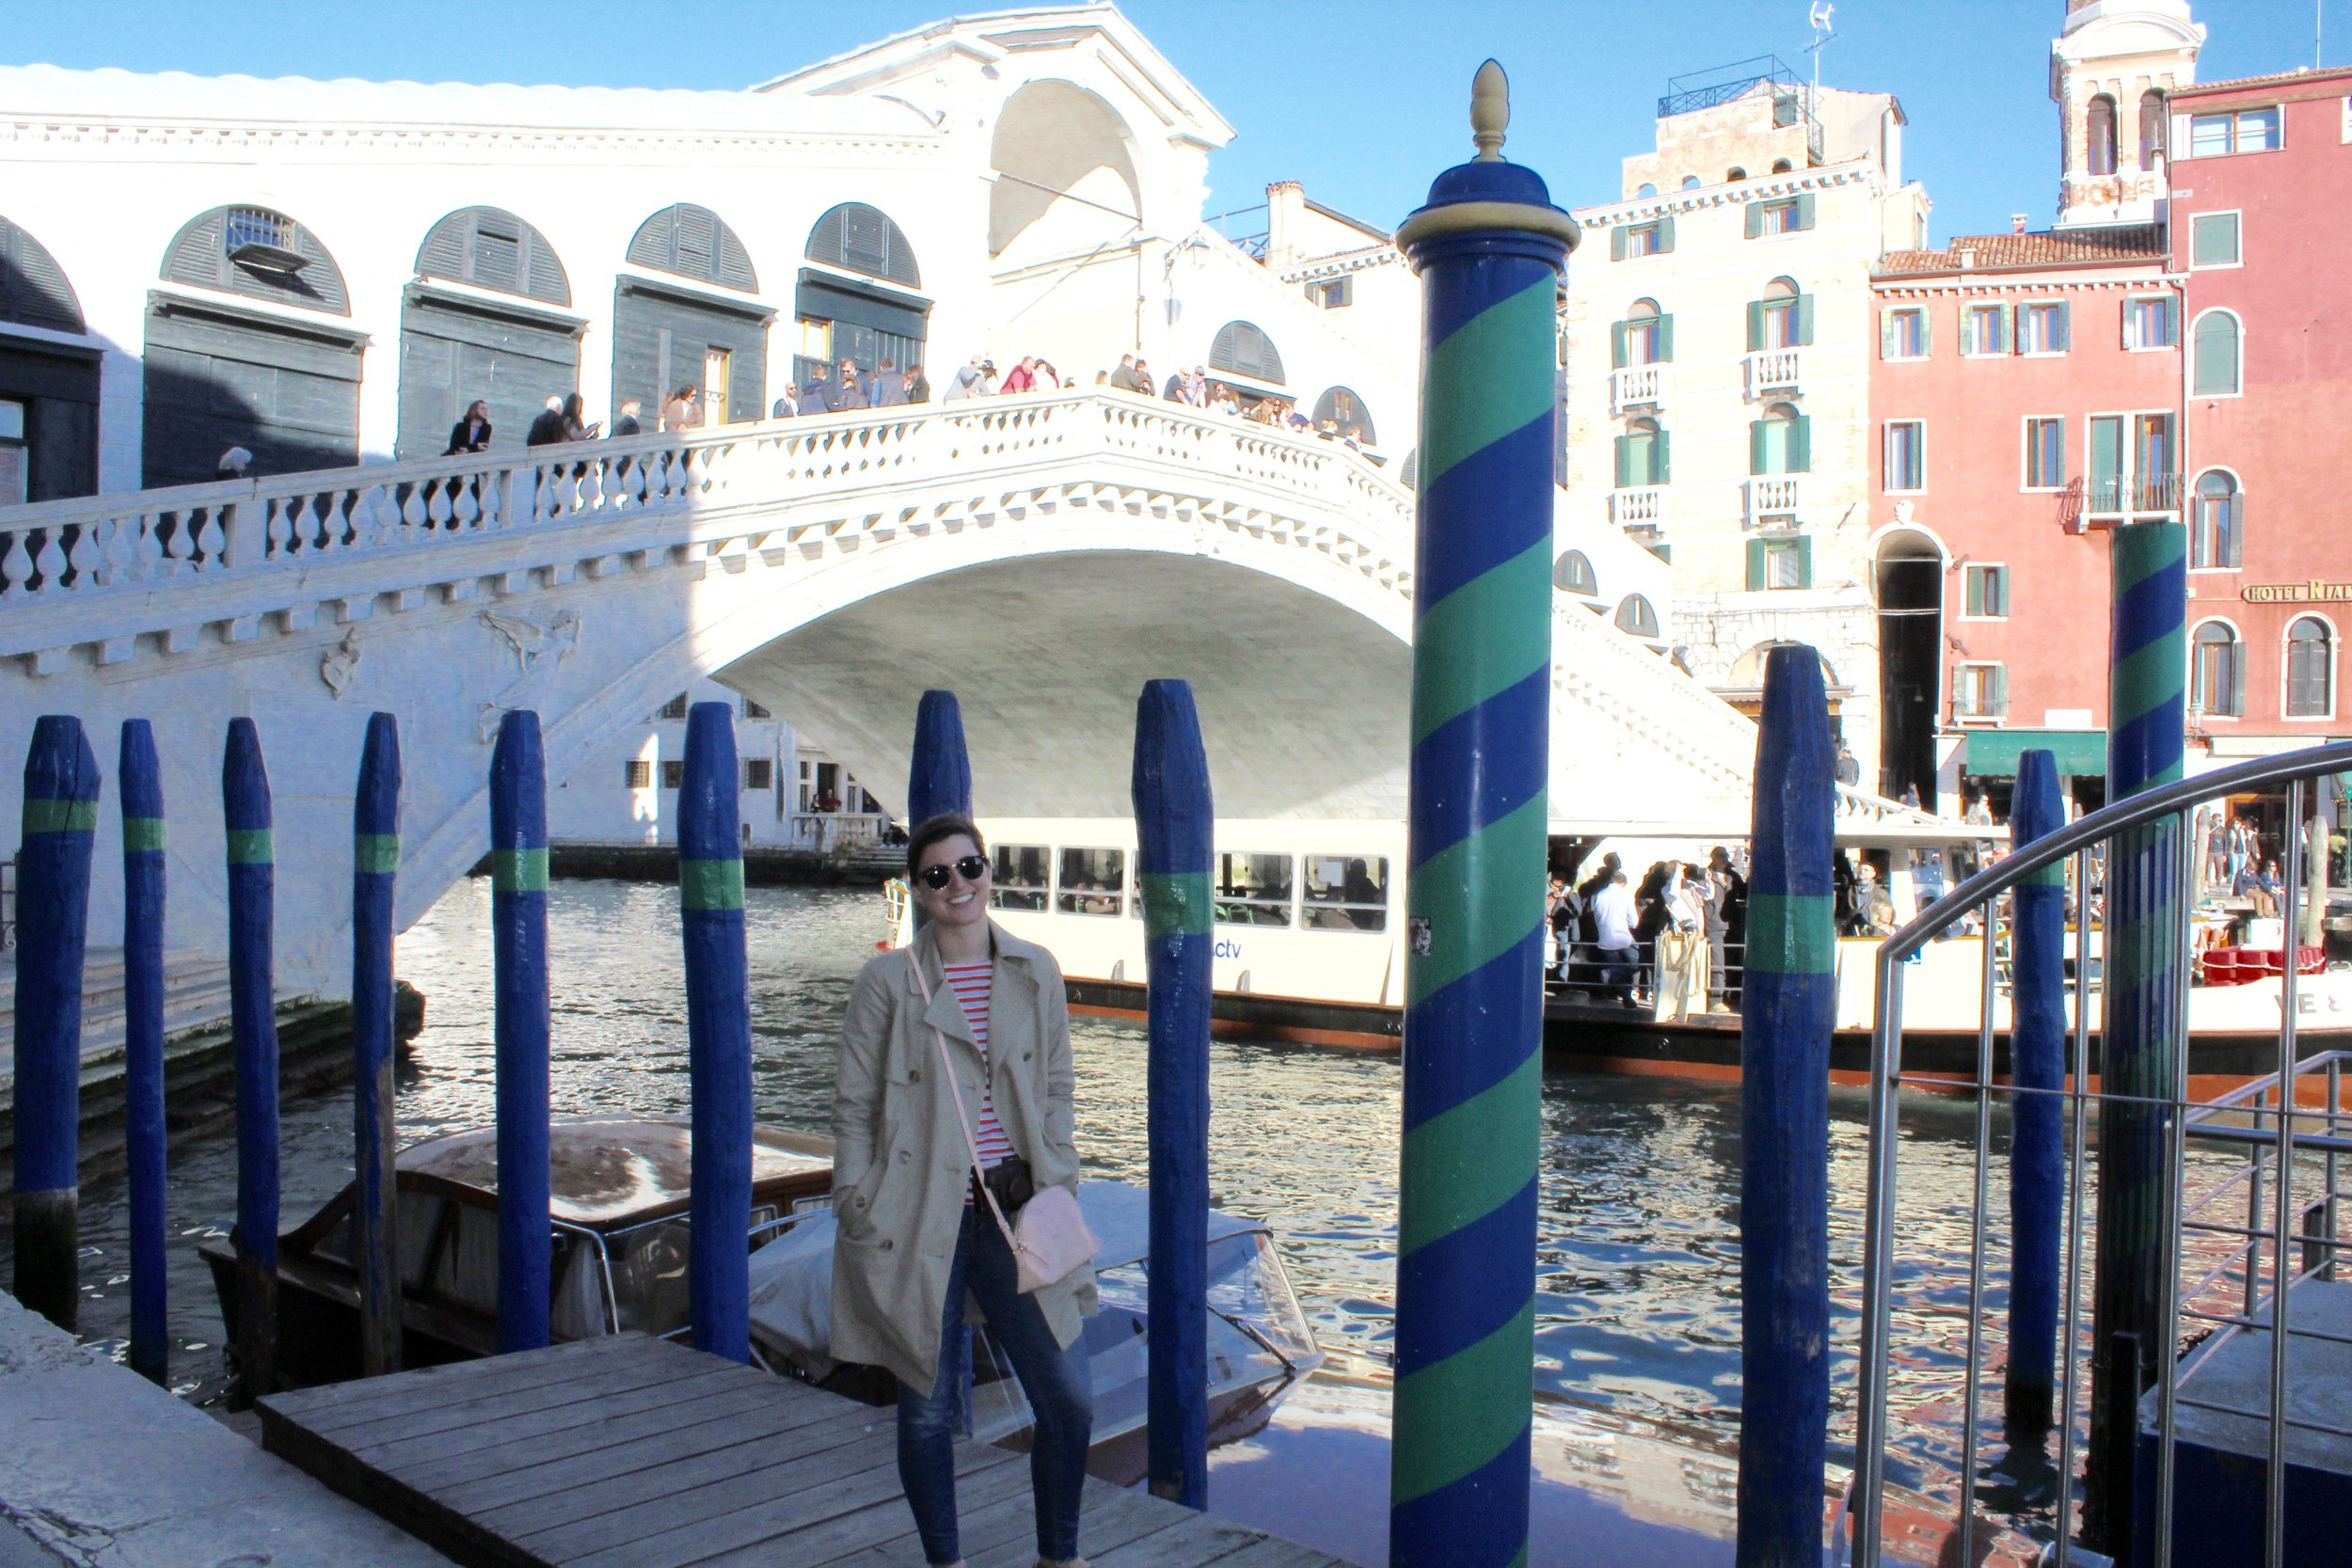 The famous Rialto Bridge, filled with store fronts and merchants